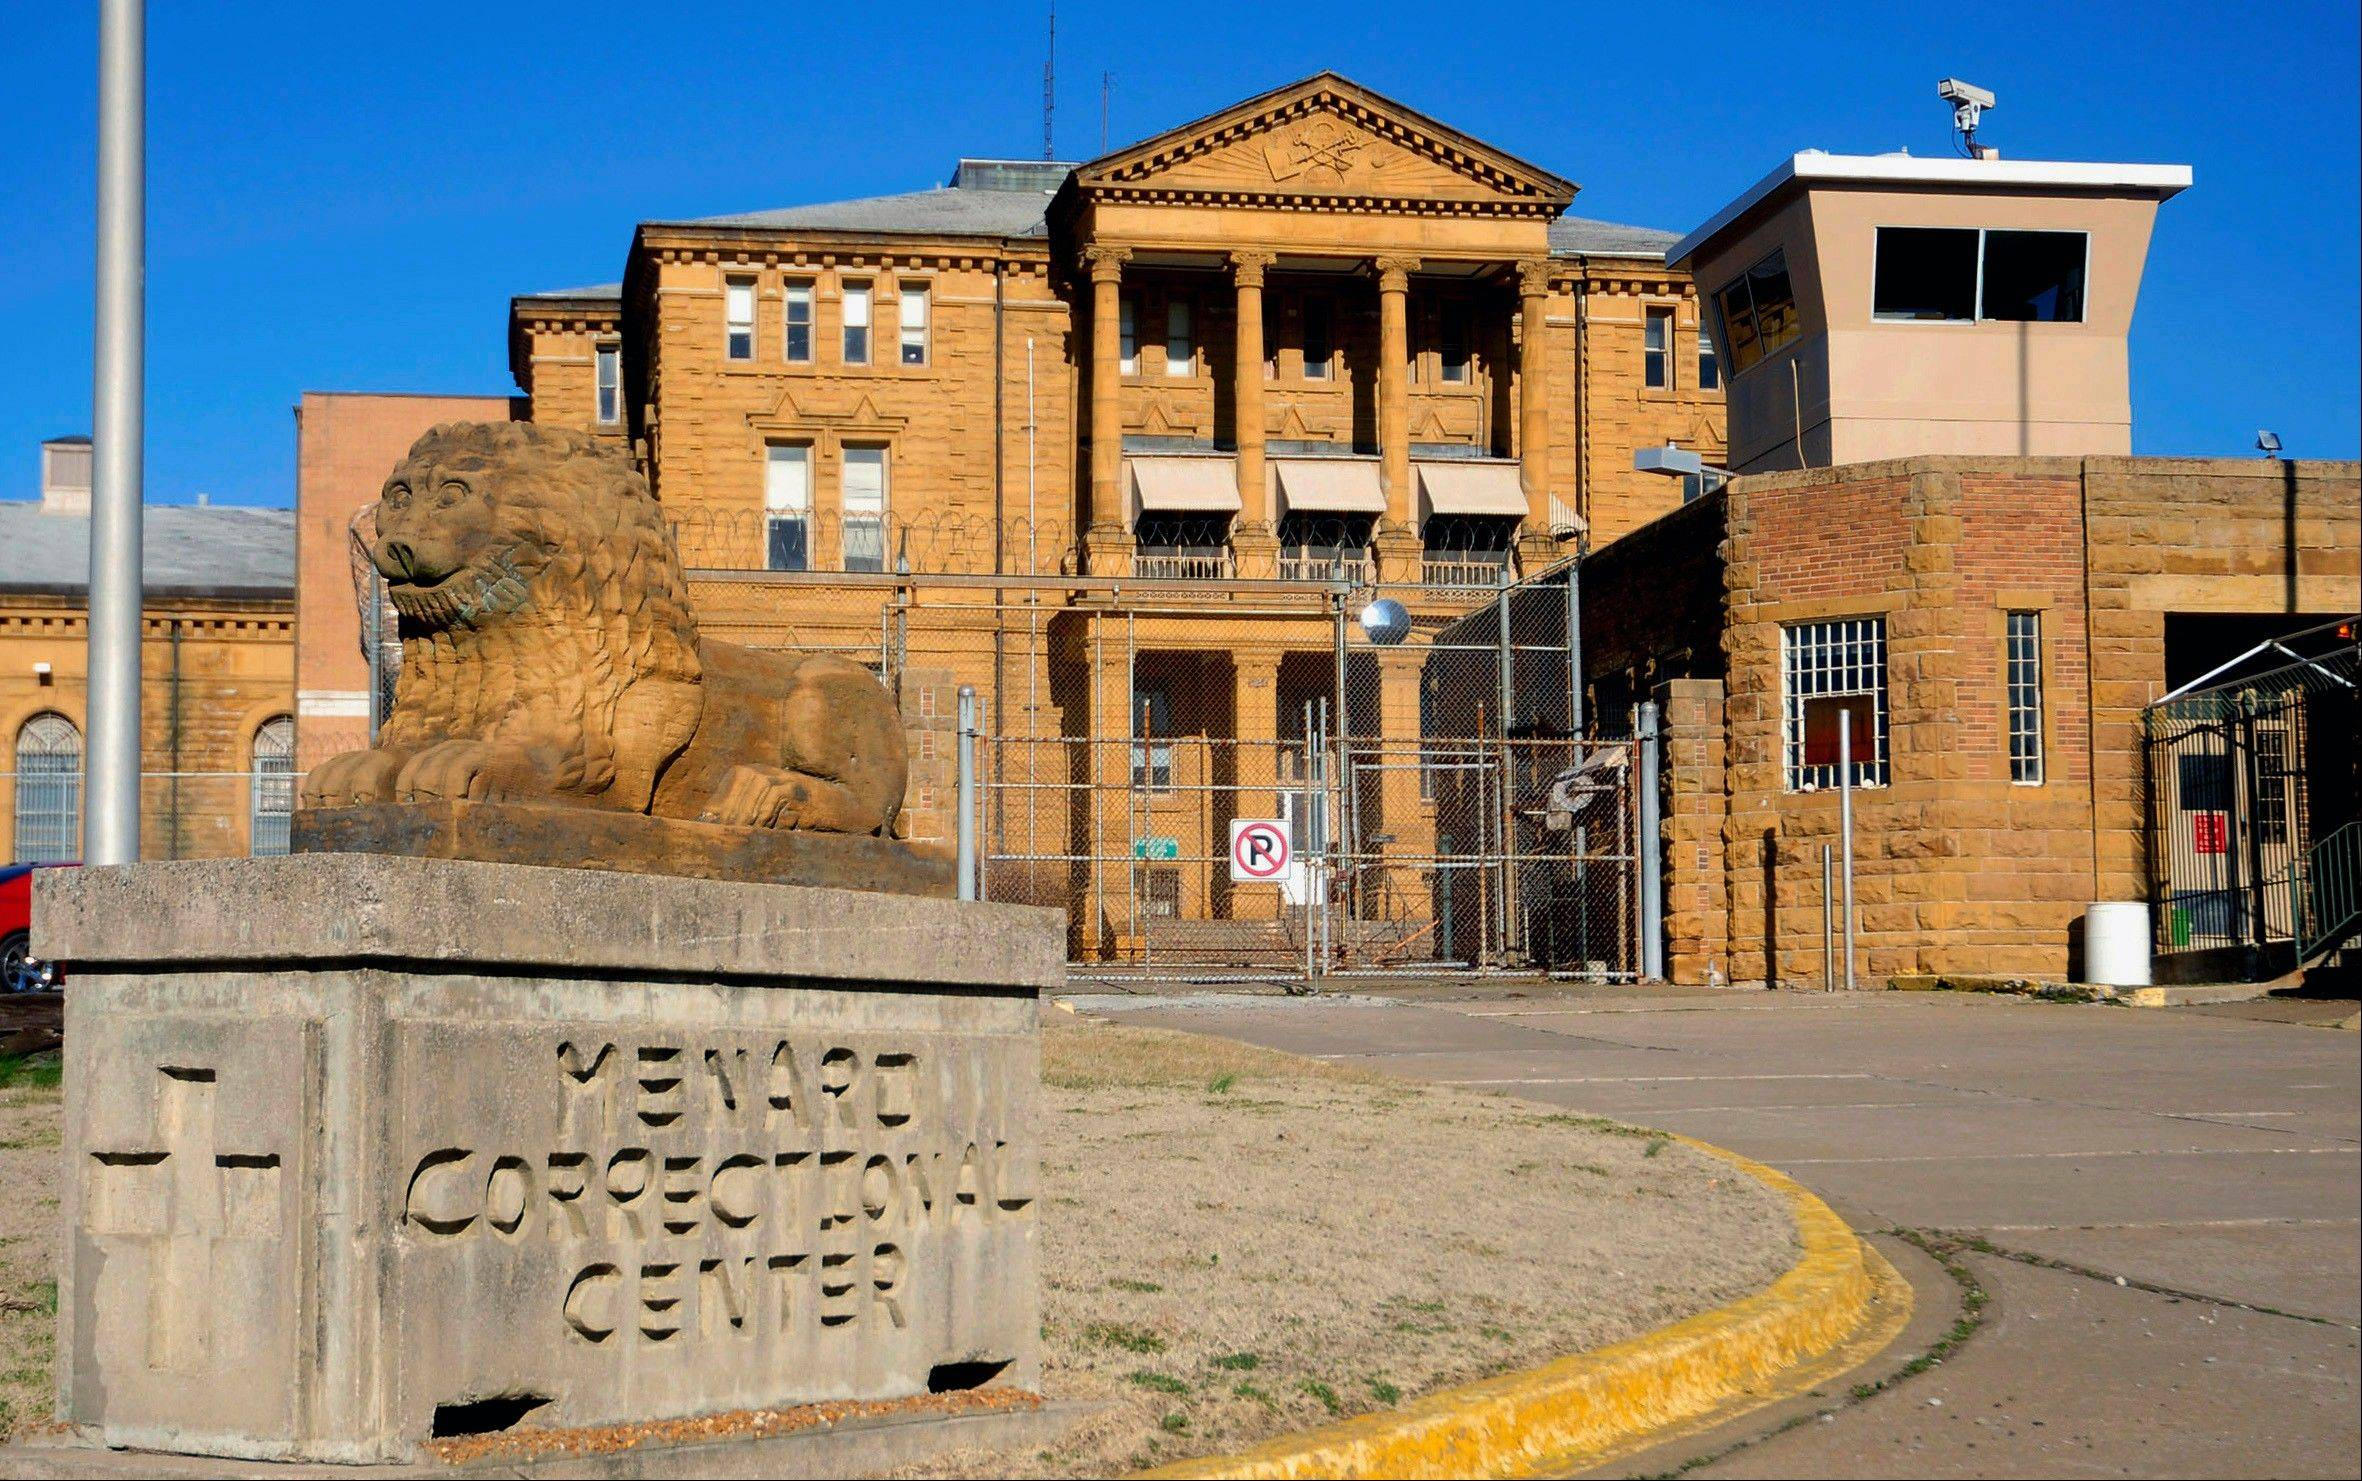 Under a proposal, wood, paper and food refuse could be burned to provide about 10 percent of the power necessary to operate Menard Correctional Center, a 3,600-inmate prison built in the 1870s.